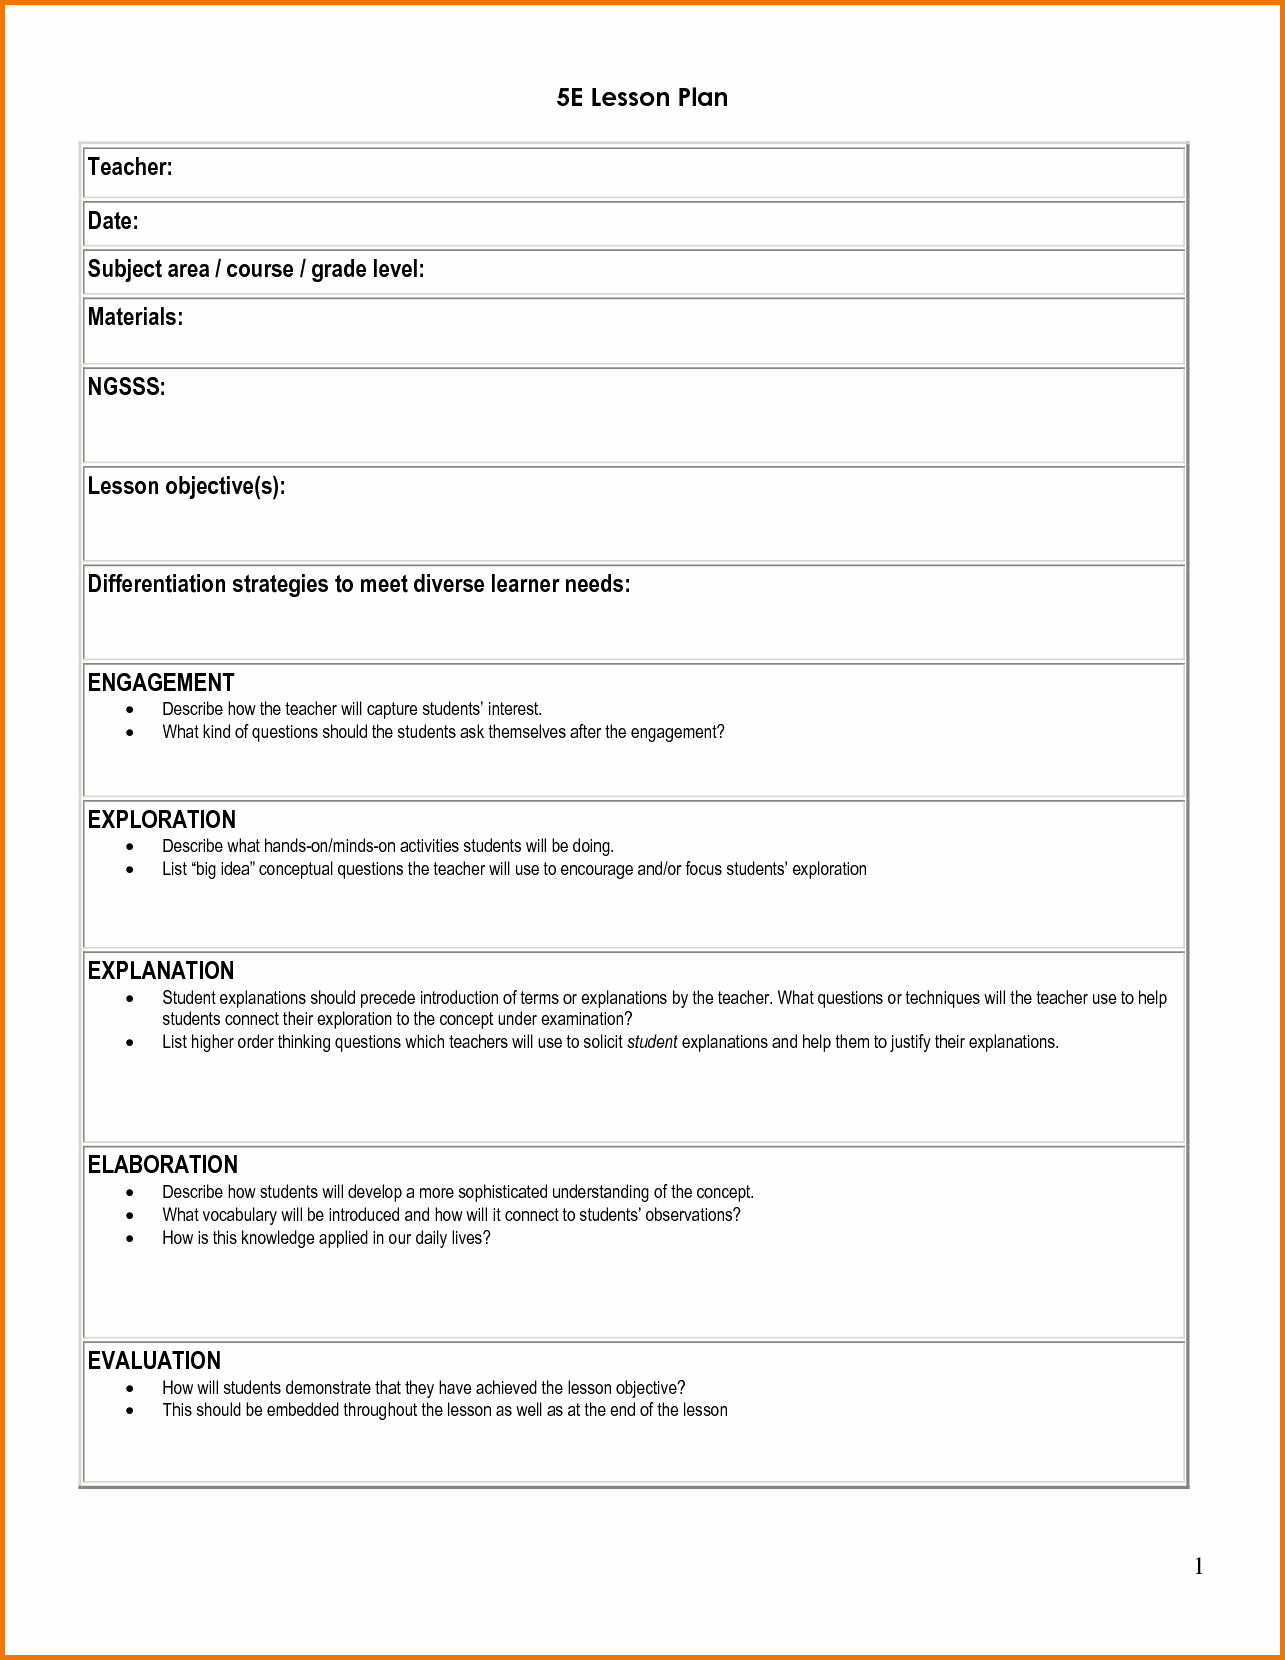 Ngss Lesson Plan Template Lovely 5e Lesson Plan Template Texas for Math Ngss